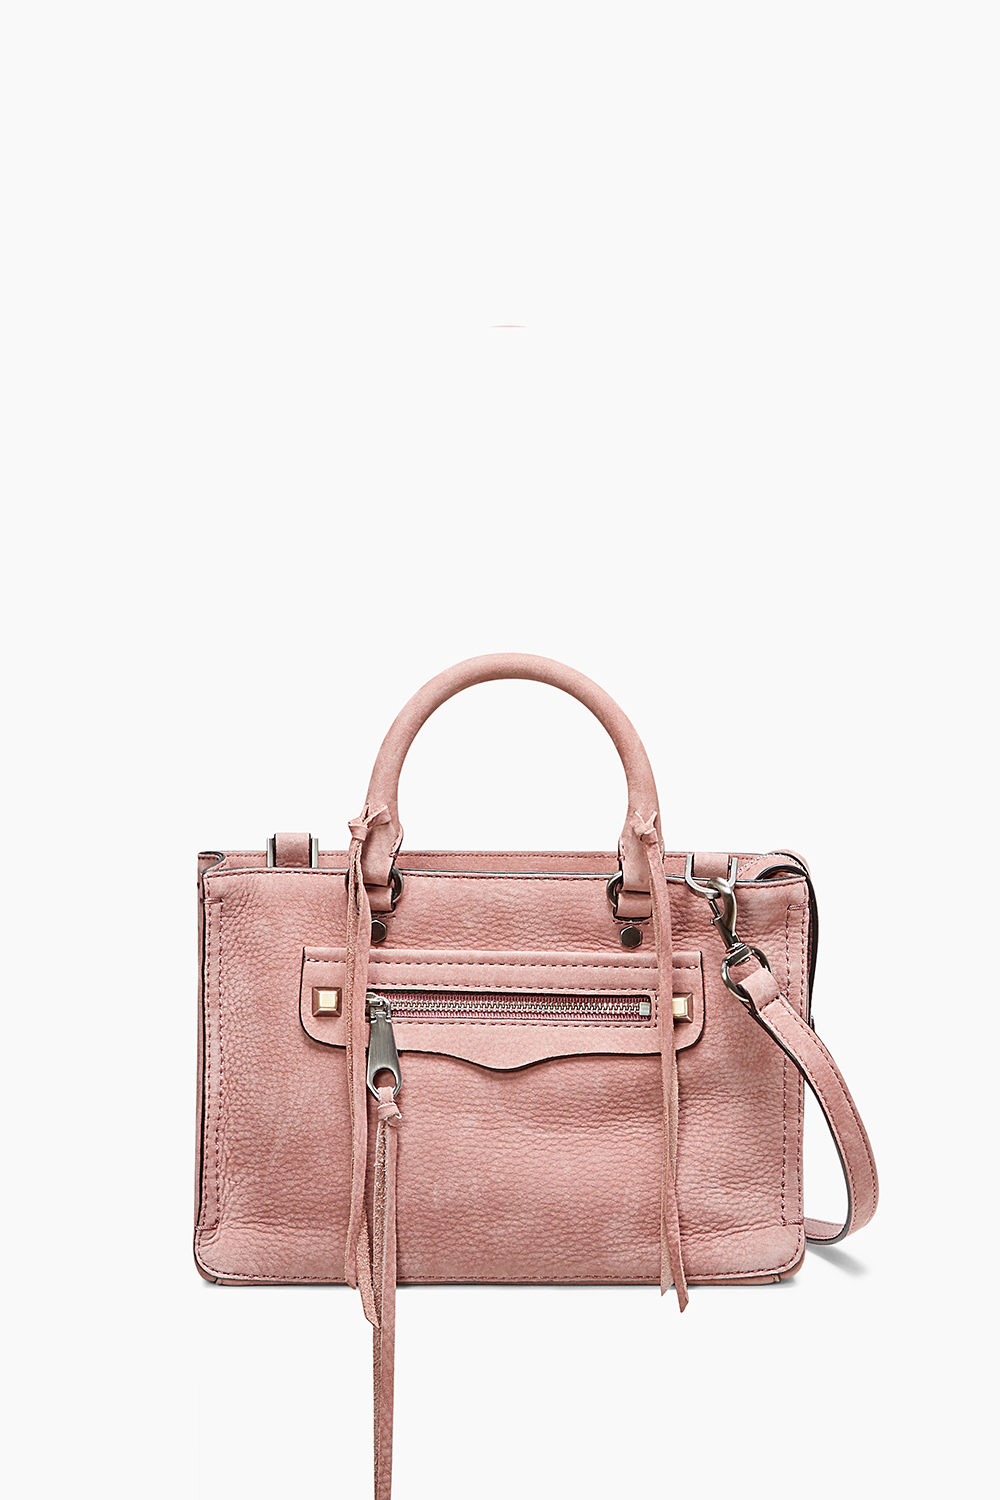 XU17FNUX61_MICRO_REGAN_SATCHEL_BERRY_SMOOTHIE_$245.jpg